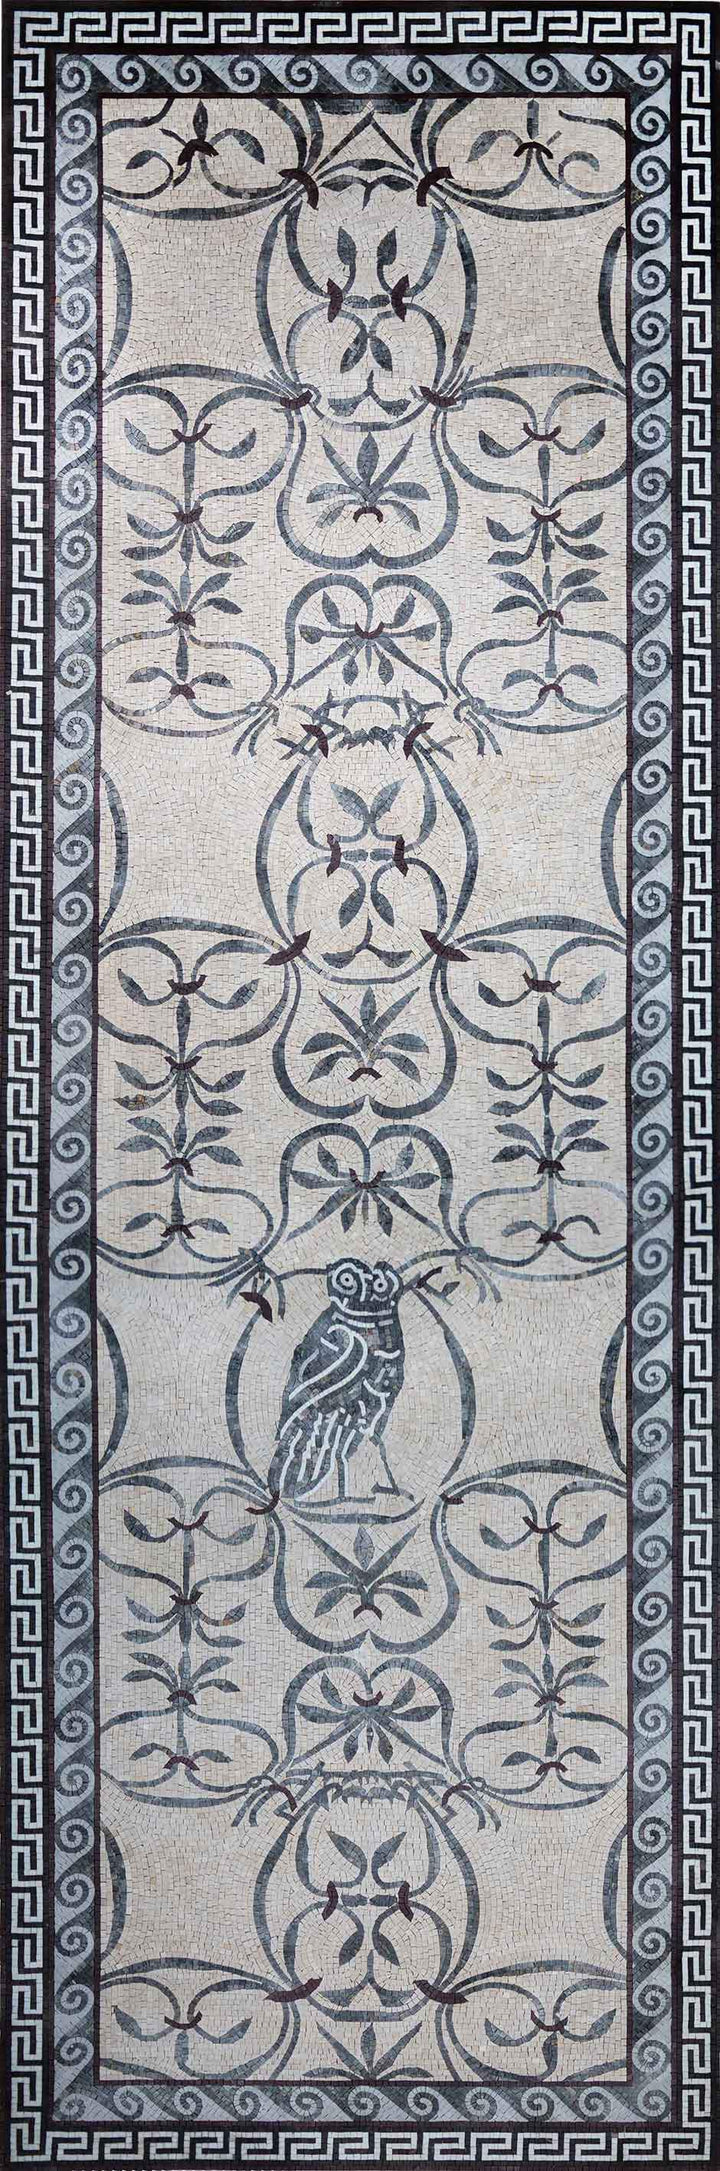 Owl & Floral Pattern Mosaic Wall Art